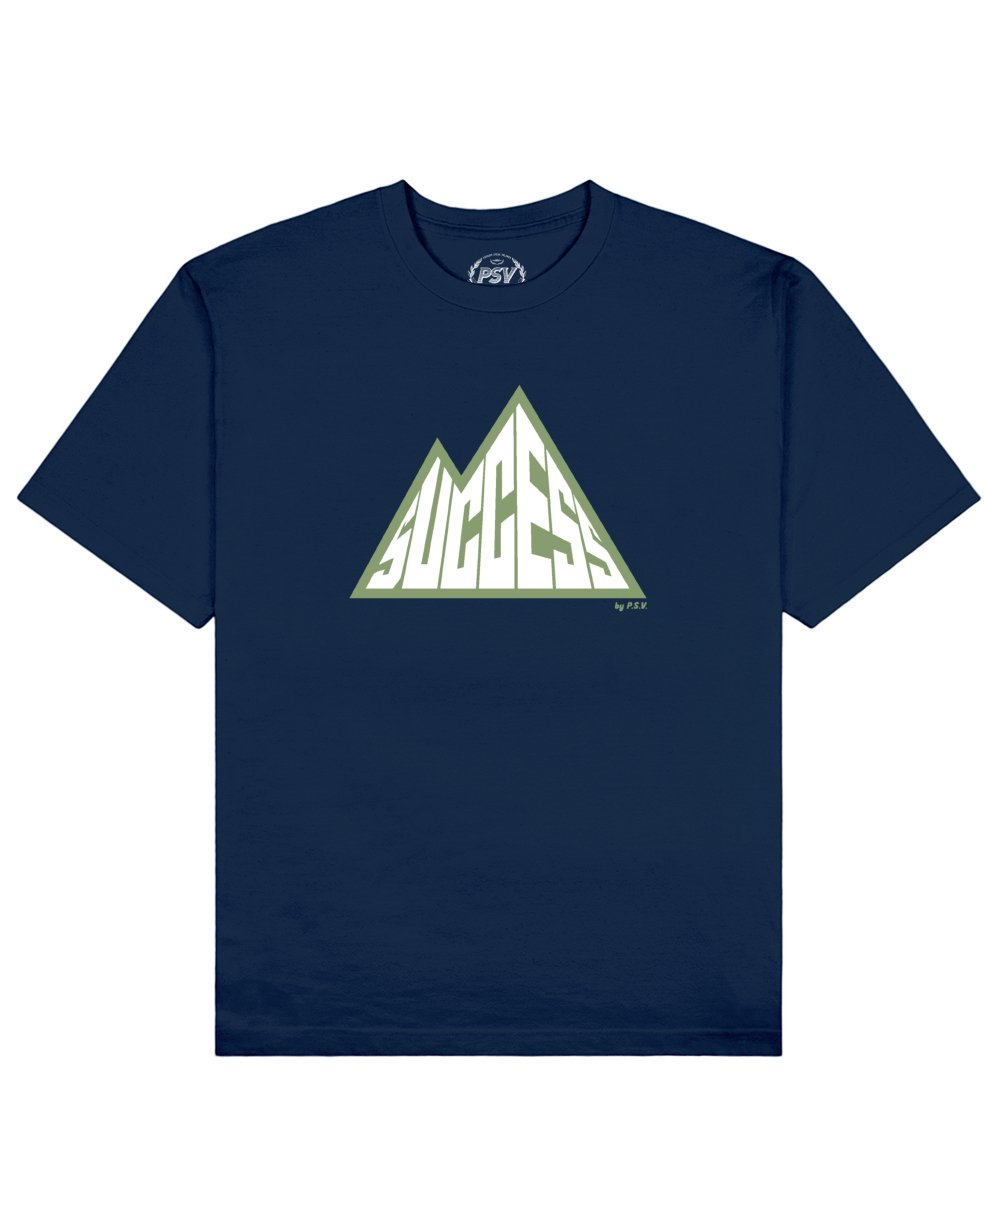 Success is a Mountain Print T-Shirt in Blue - T-Shirts - PSV - BRANMA